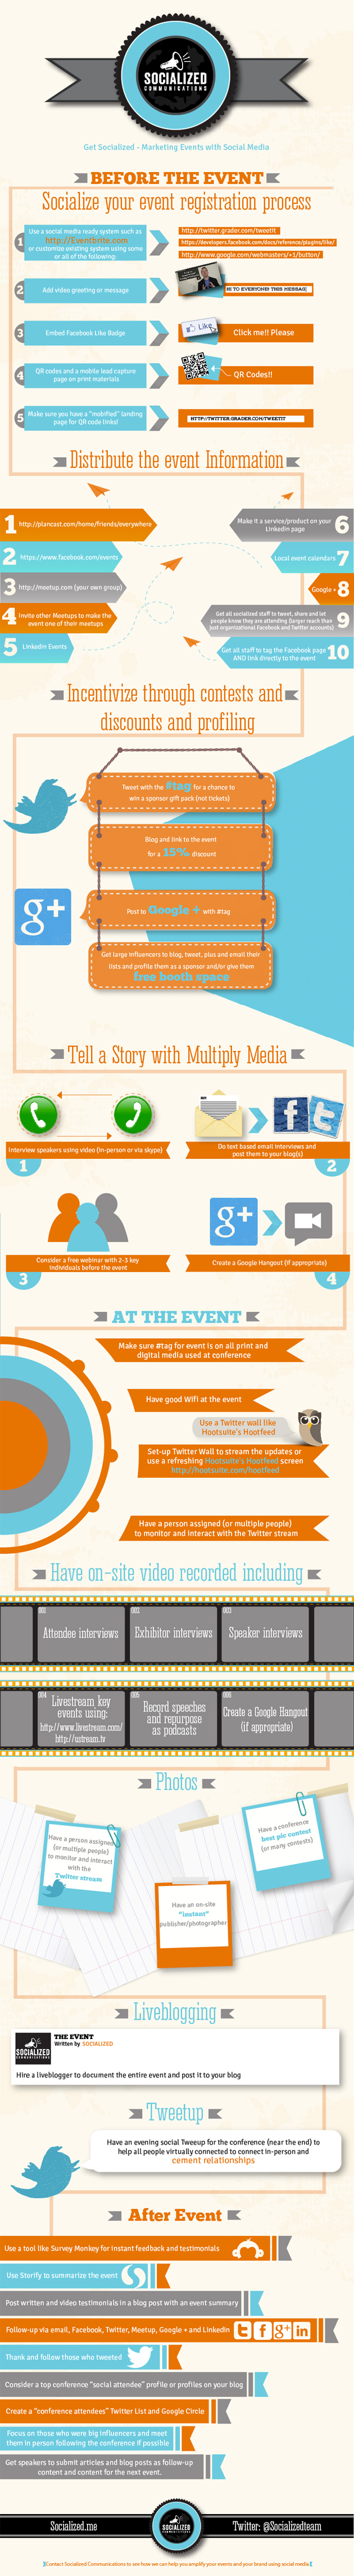 infografik-social-media-events